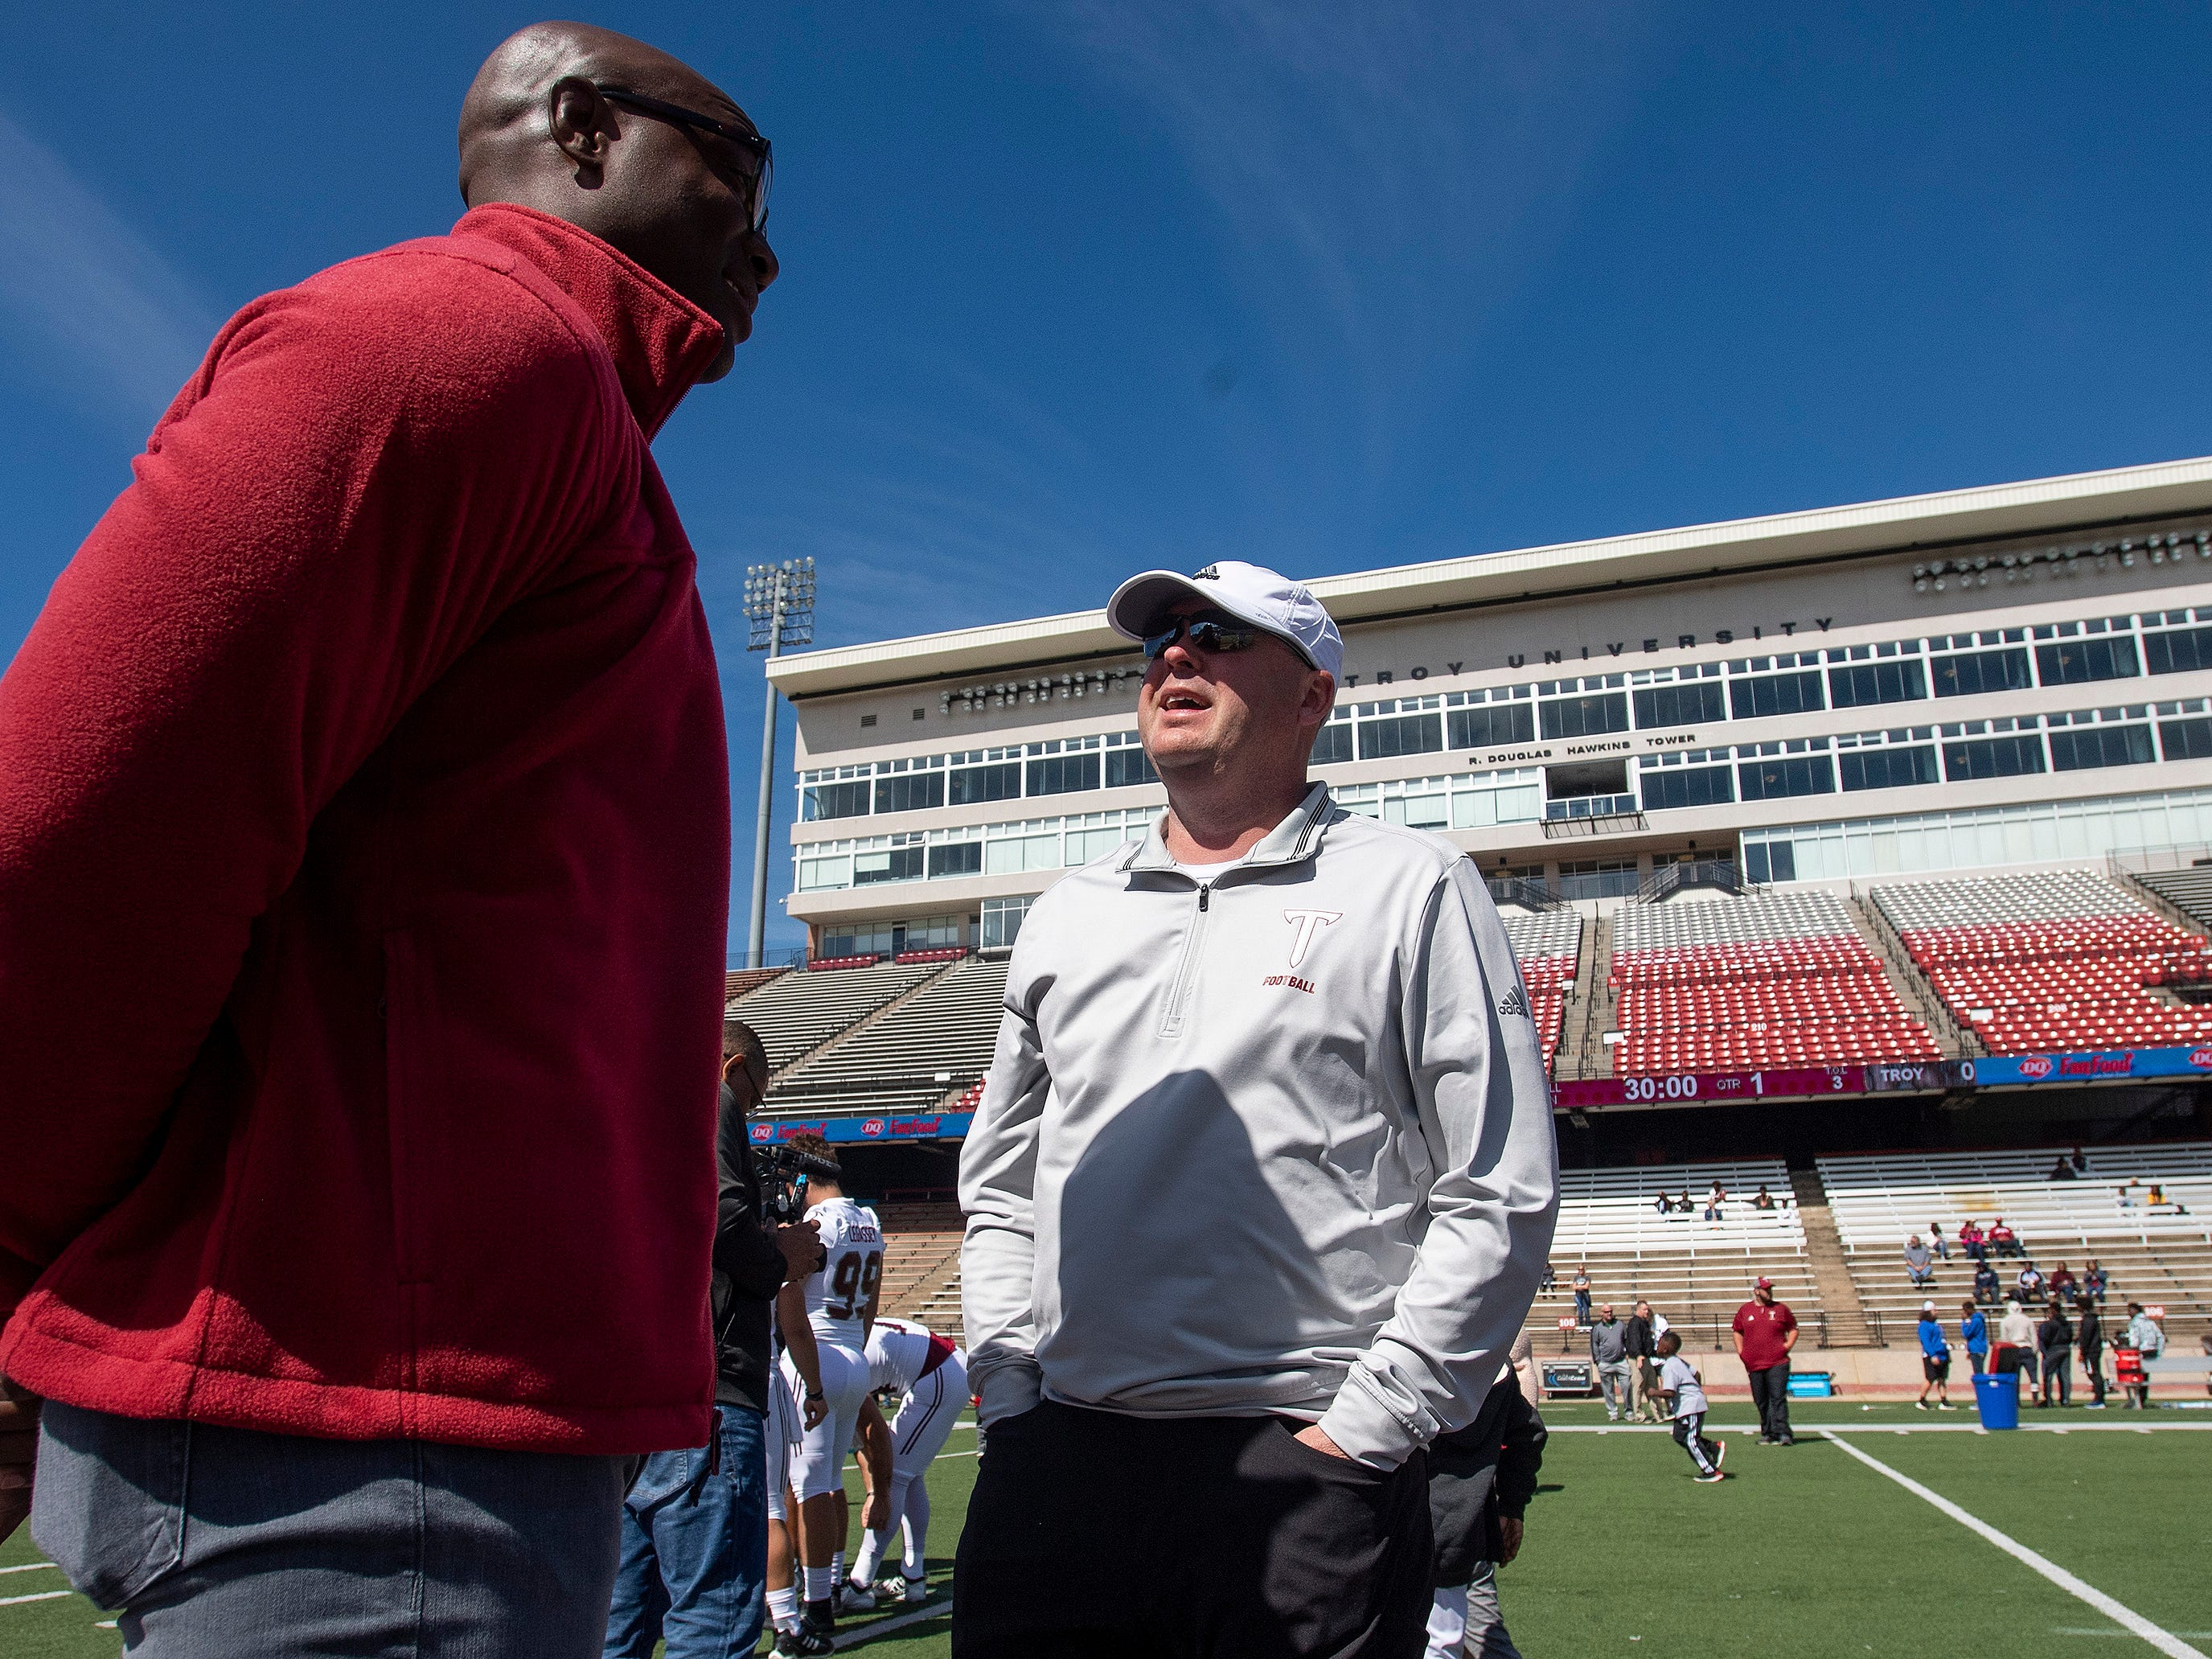 Troy head coach Chip Lindsey chats with former Troy University and NFL player DeMarcus Ware before the Troy University T-Day spring scrimmage game in Troy, Ala., on Saturday April 20, 2019.